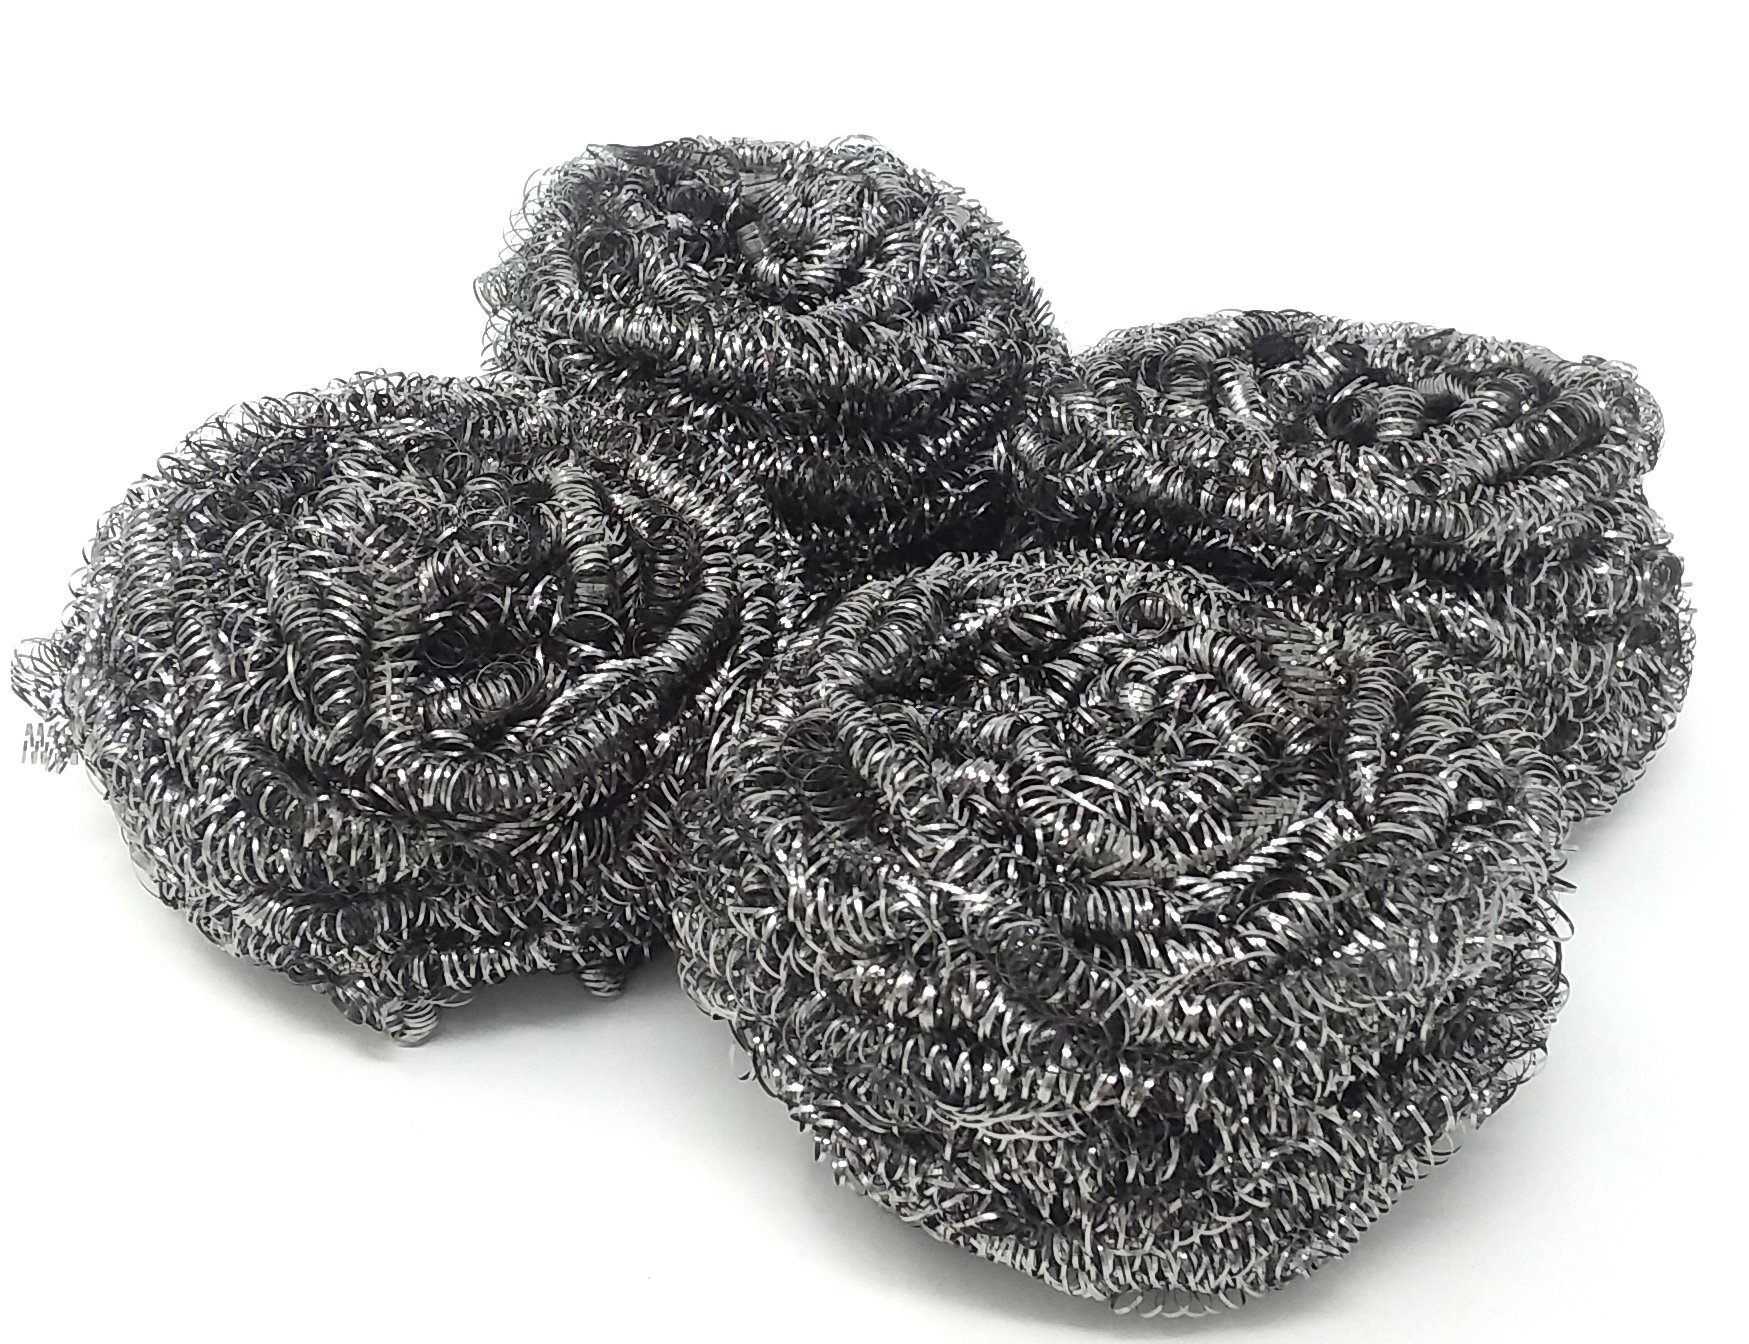 288 Small Round Mesh STAINLESS STEEL Scourer Sponge Wire For DEEP CLEANING Dishes, Pots, Pans And More WHOLESALE BULK LOT